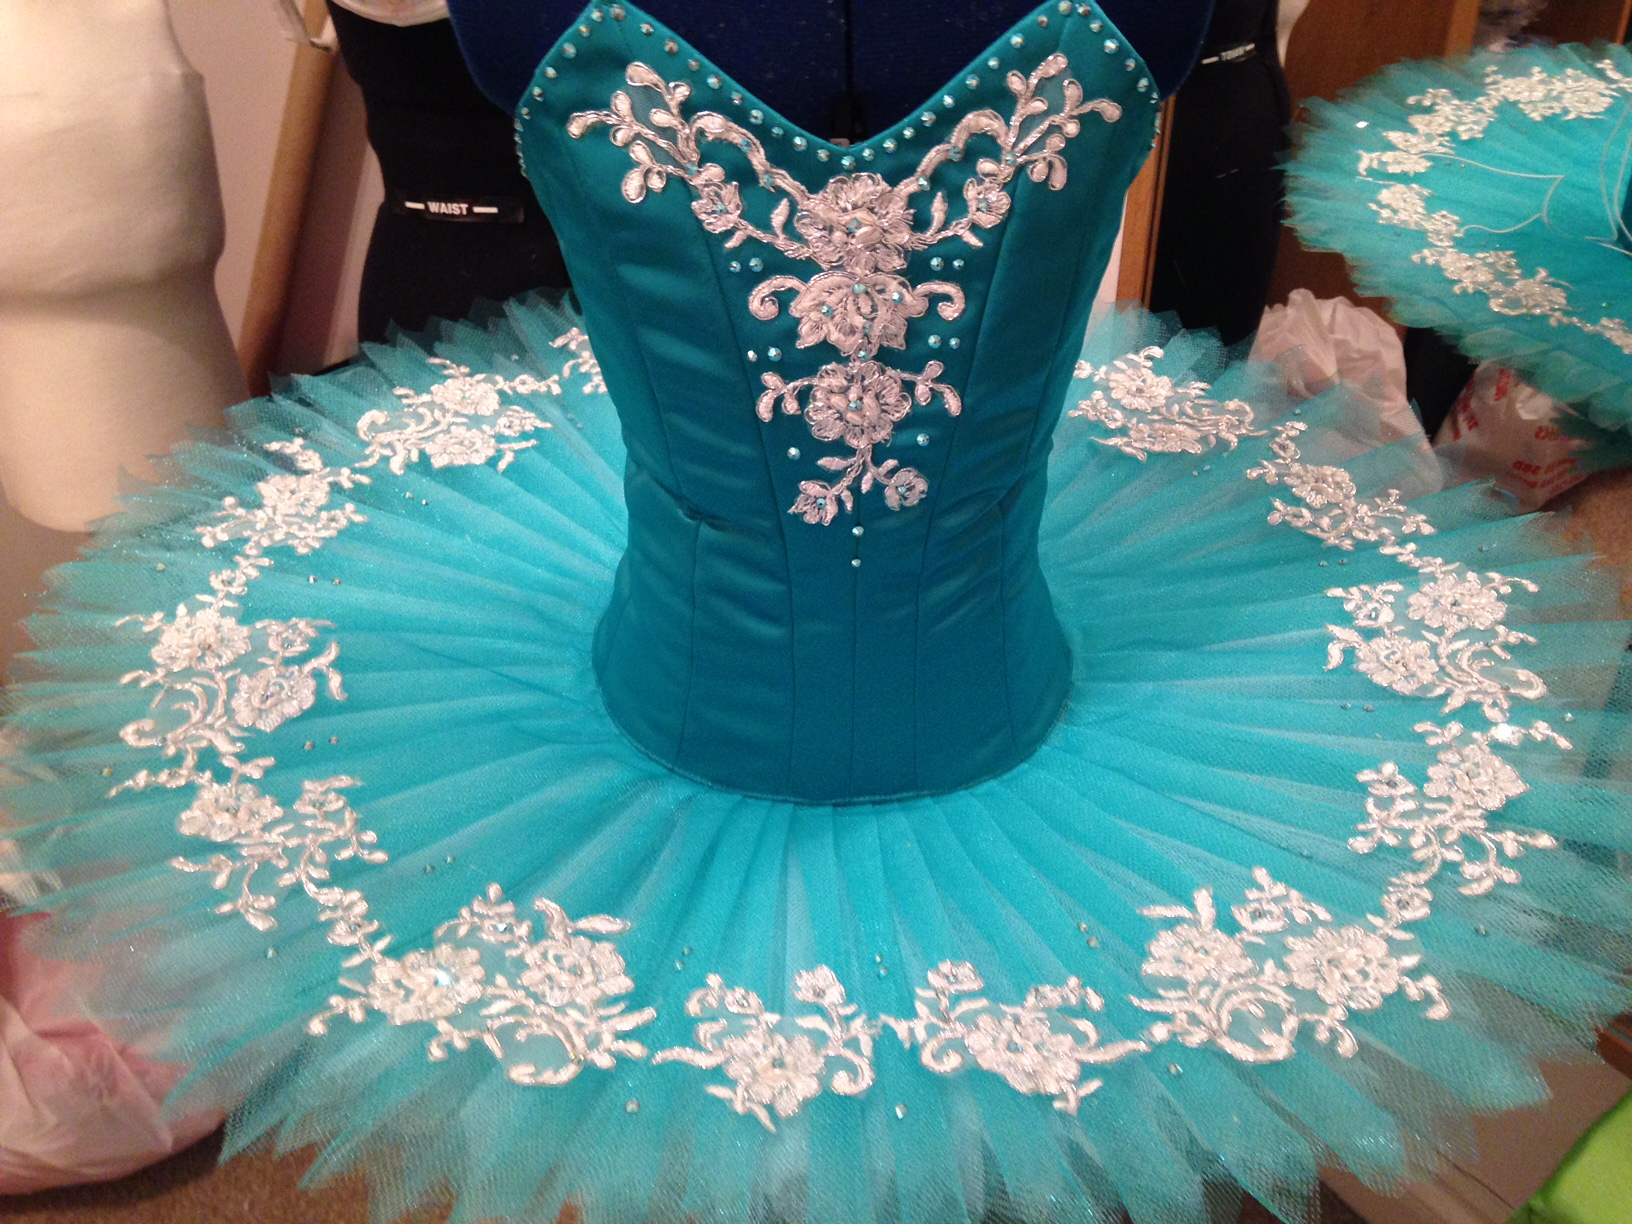 Jade green and white childs tutu